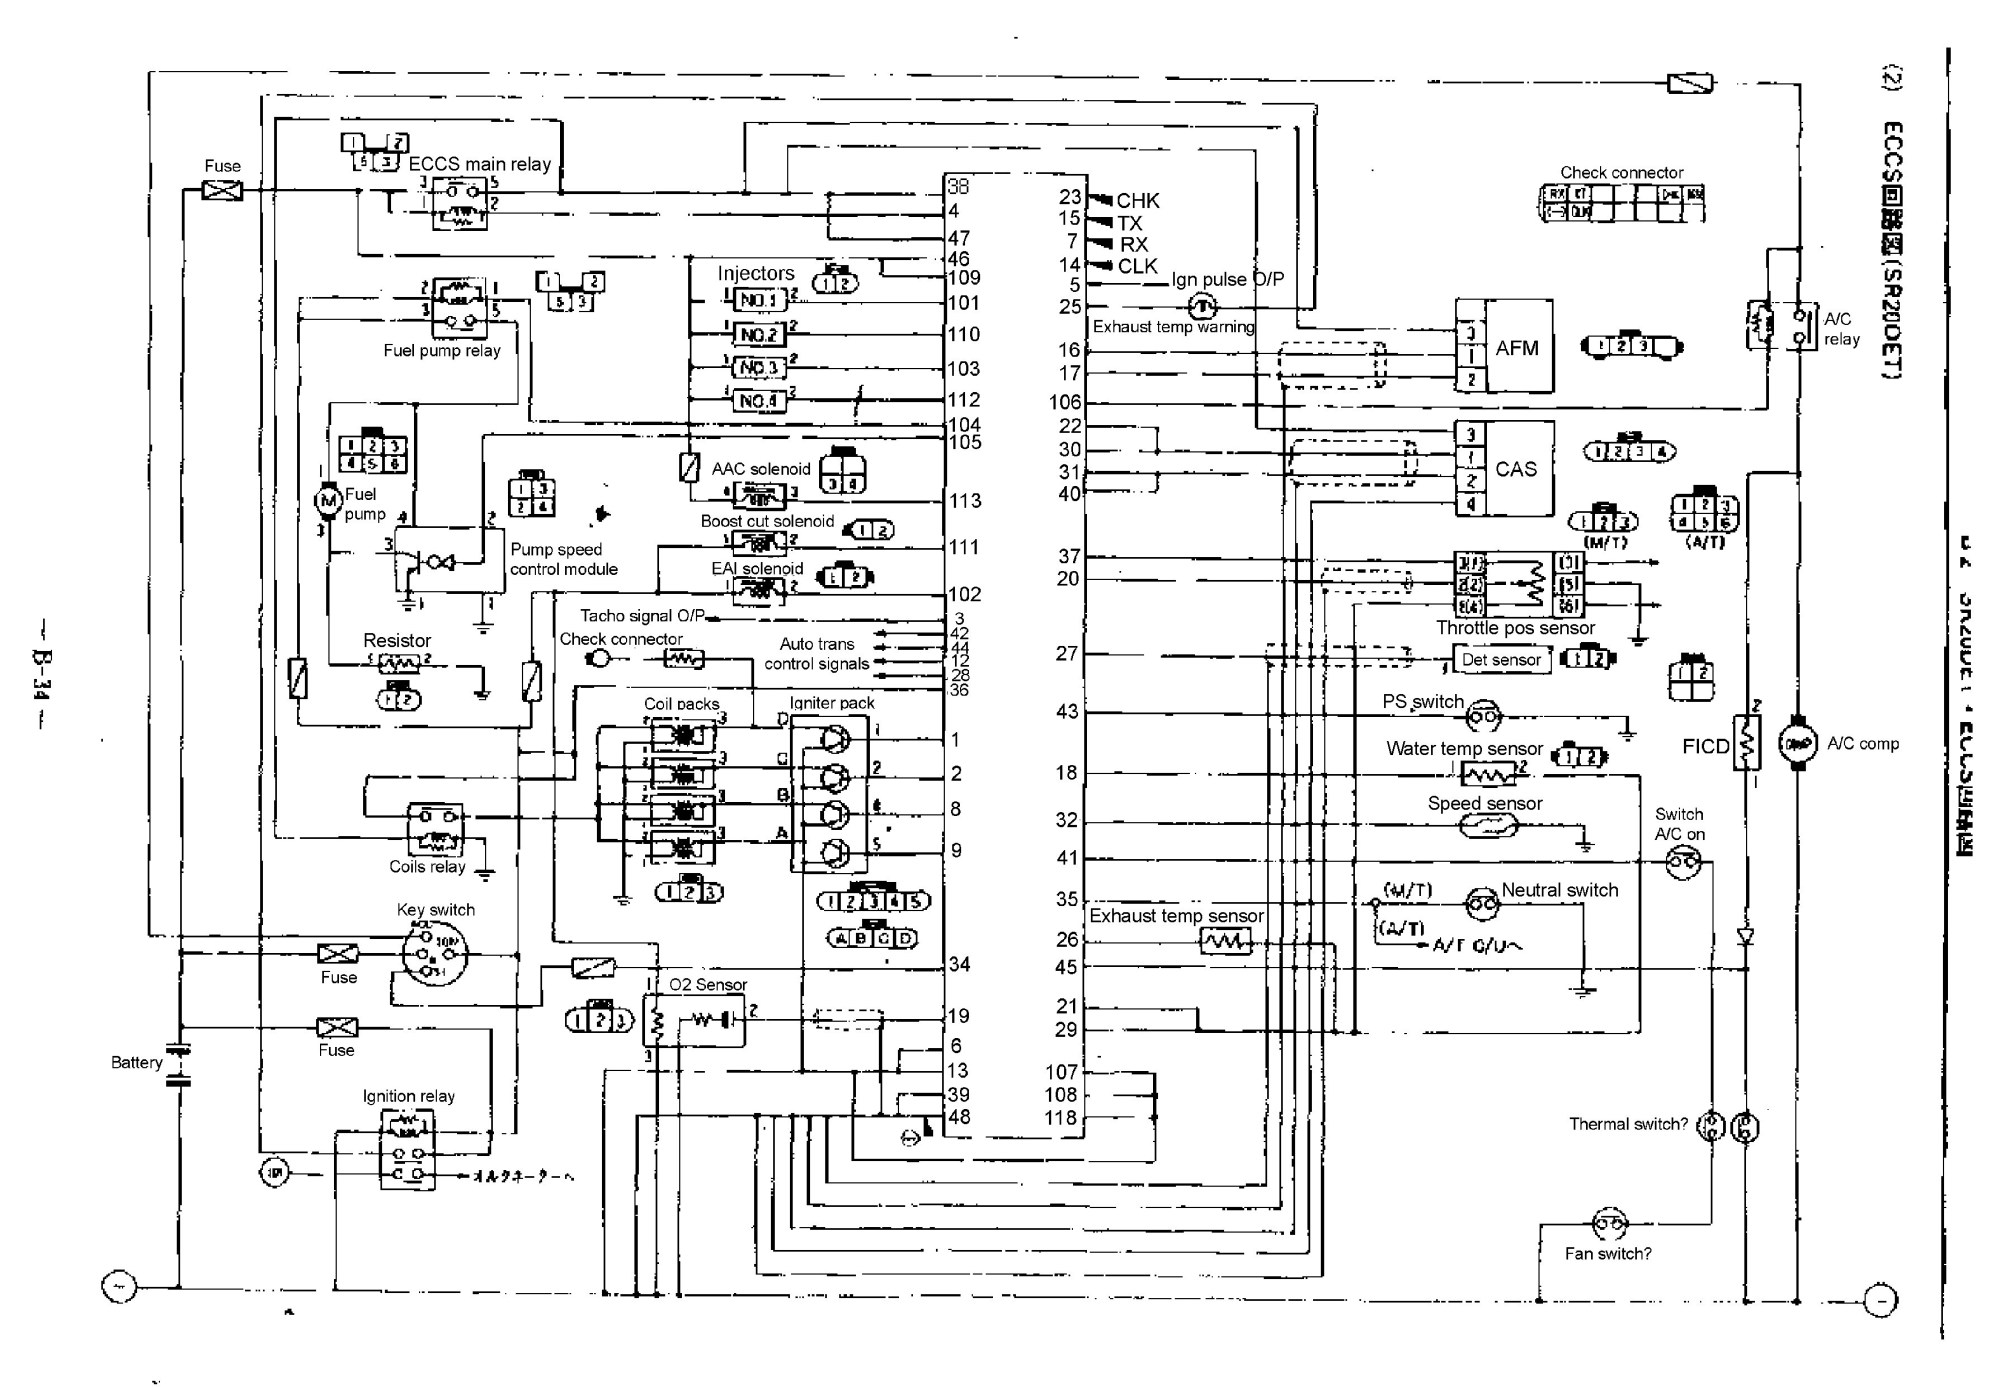 hight resolution of nissan vanette wiring diagram wiring diagrams value nissan vanette engine wiring diagram nissan vanette wiring diagram